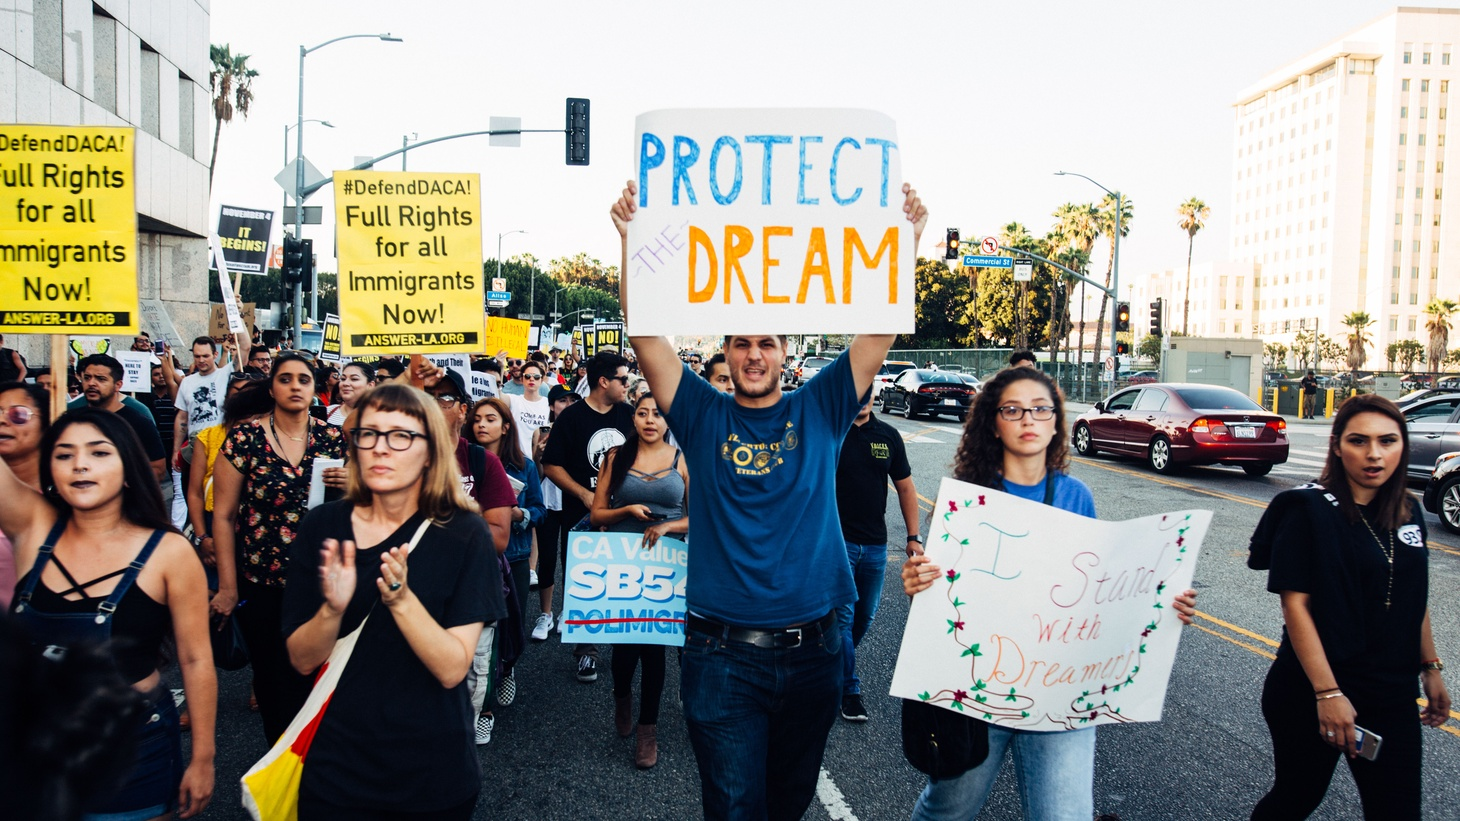 Activists during a Defend DACA rally in Los Angeles, September 5, 2017. Today, June 18, 2020, the Supreme Court ruled that President Trump's decision to end DACA is unlawful.